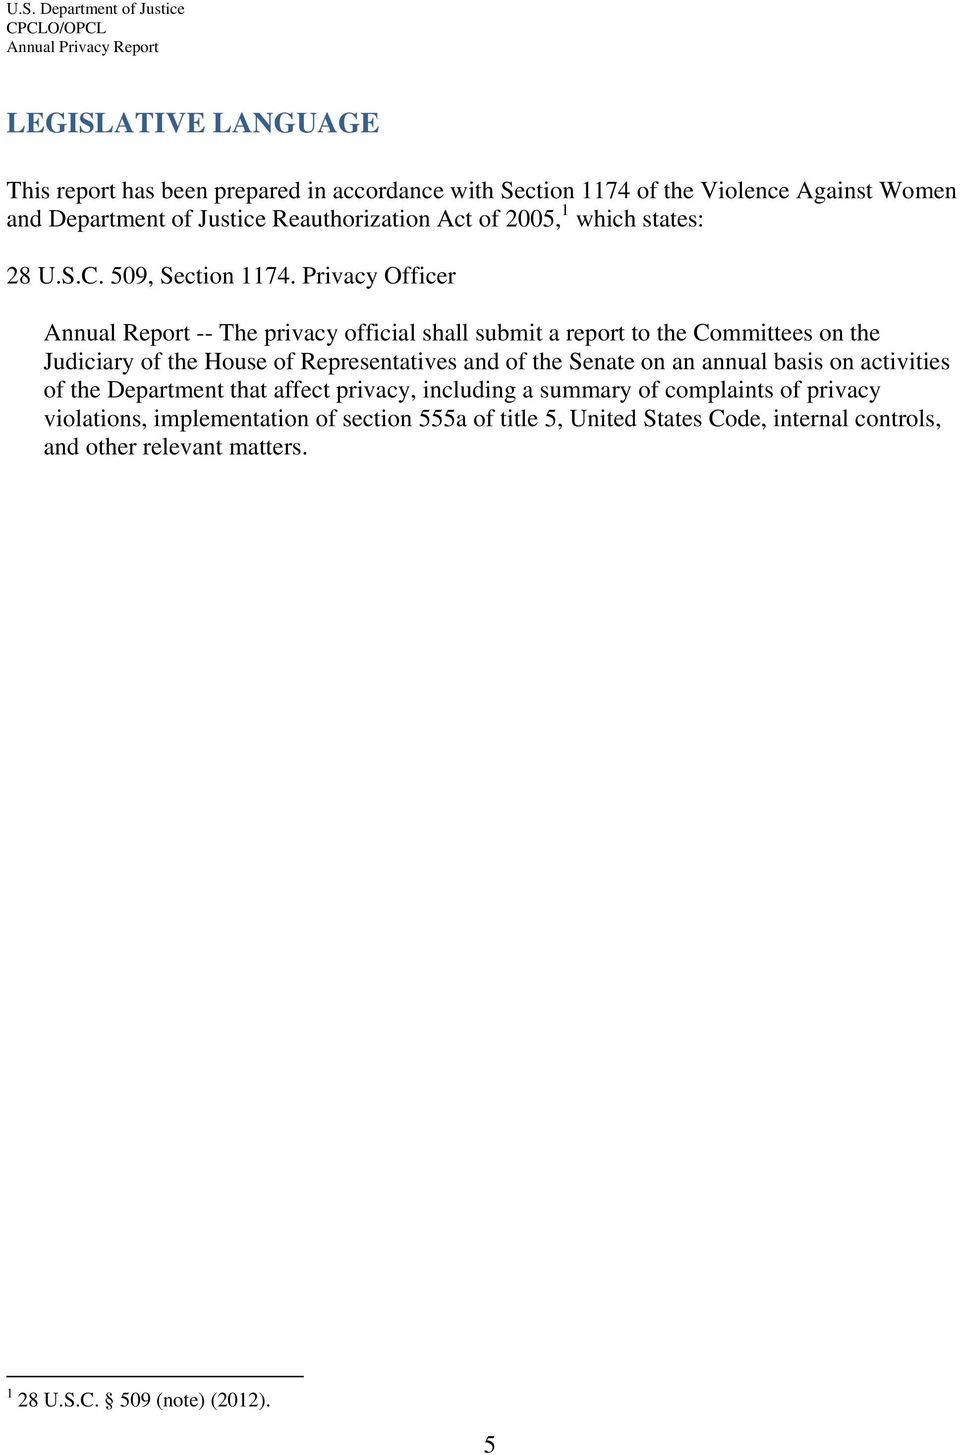 Privacy Officer Annual Report -- The privacy official shall submit a report to the Committees on the Judiciary of the House of Representatives and of the Senate